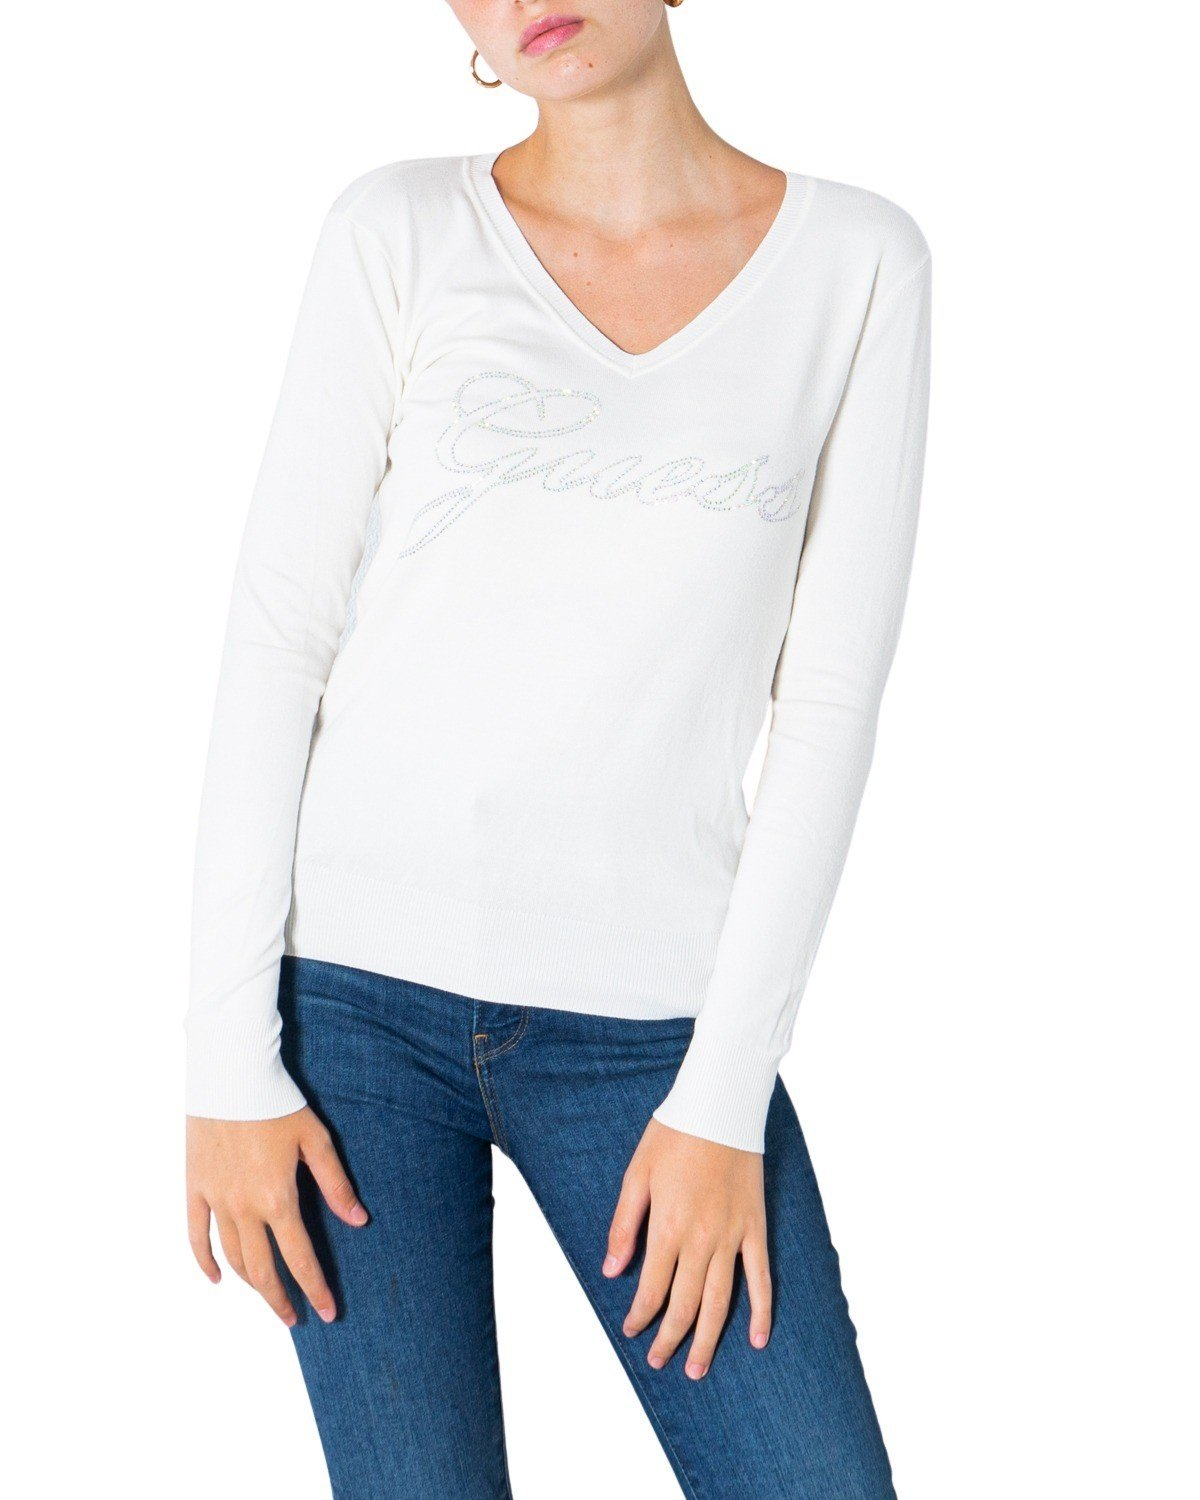 Guess Women's Sweater Various Colours 305565 - white XS